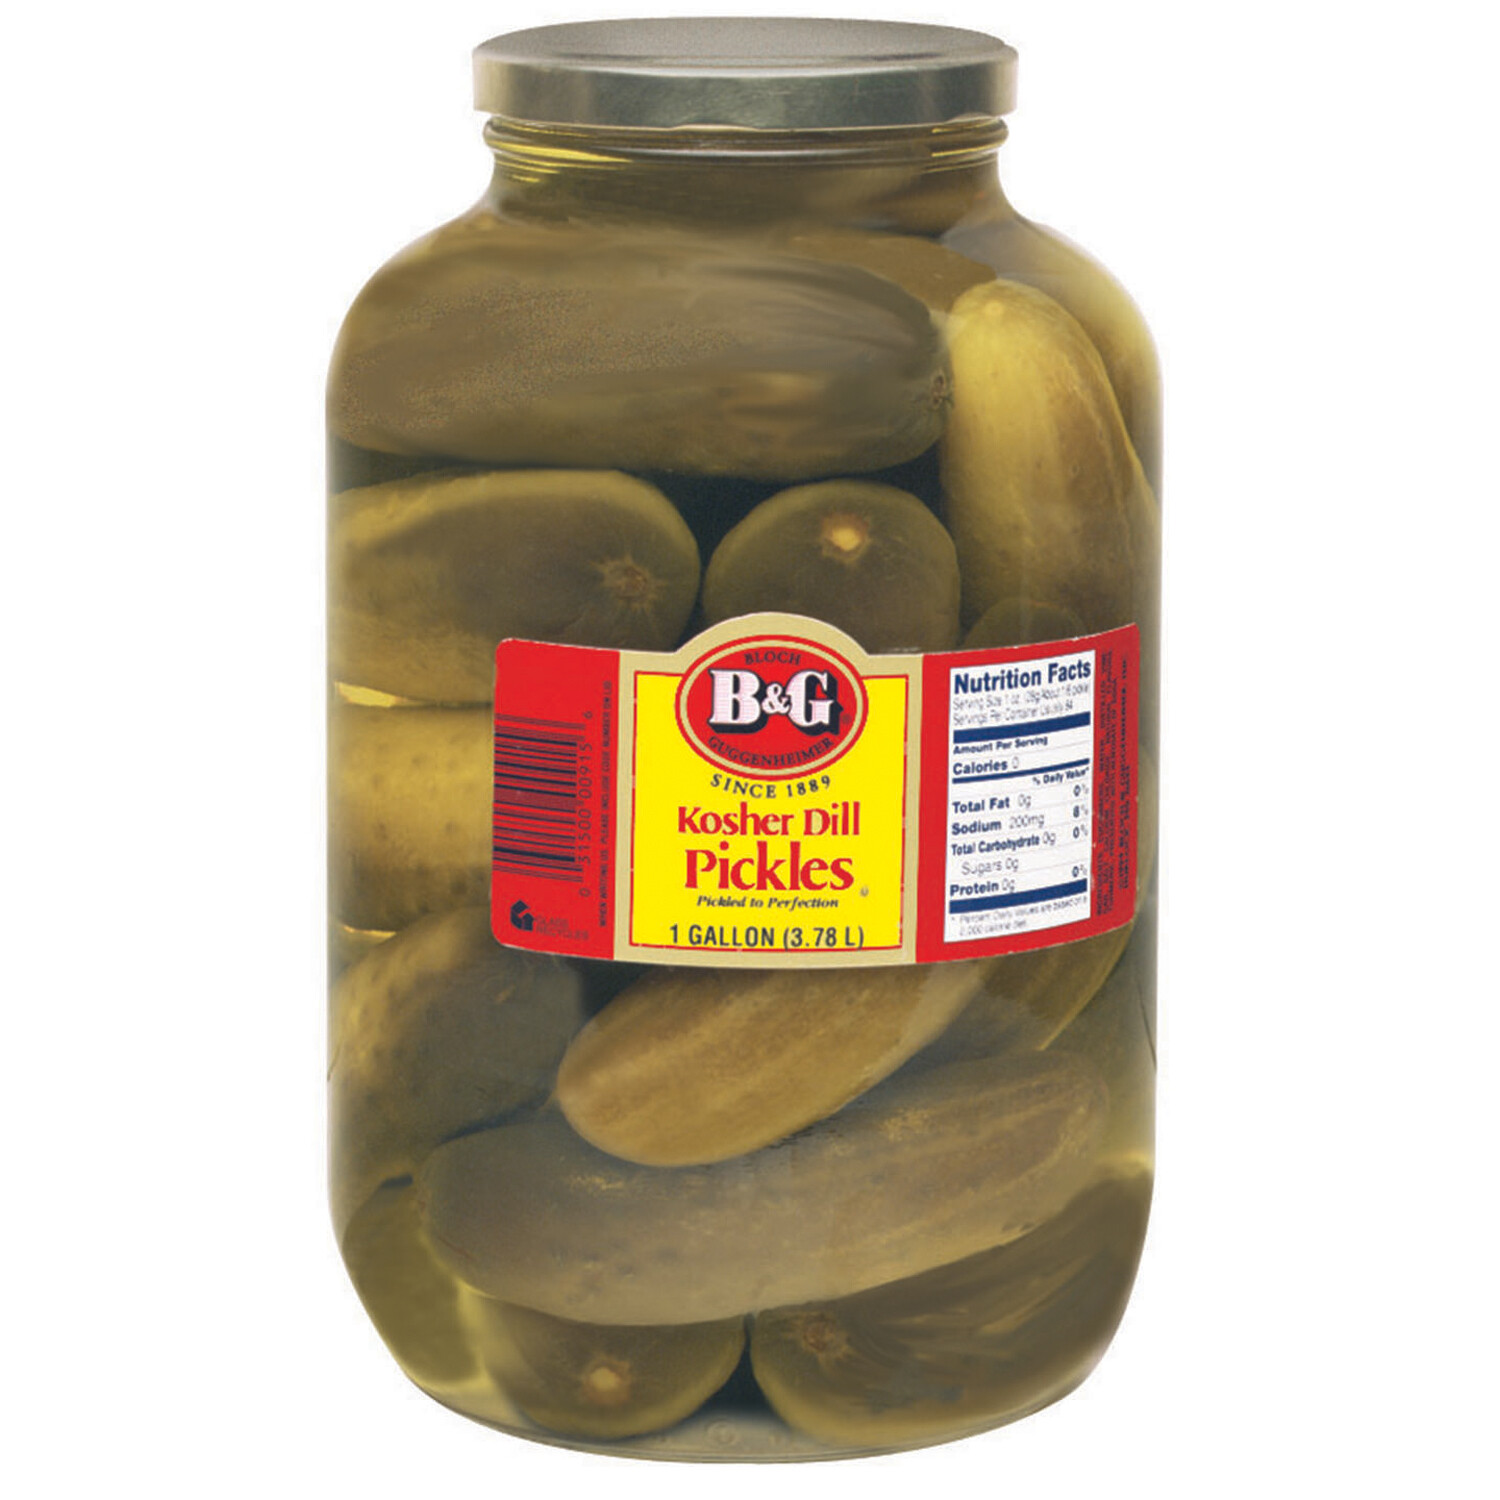 * B&G Whole Dill Pickles, 14-16 Count Gallon